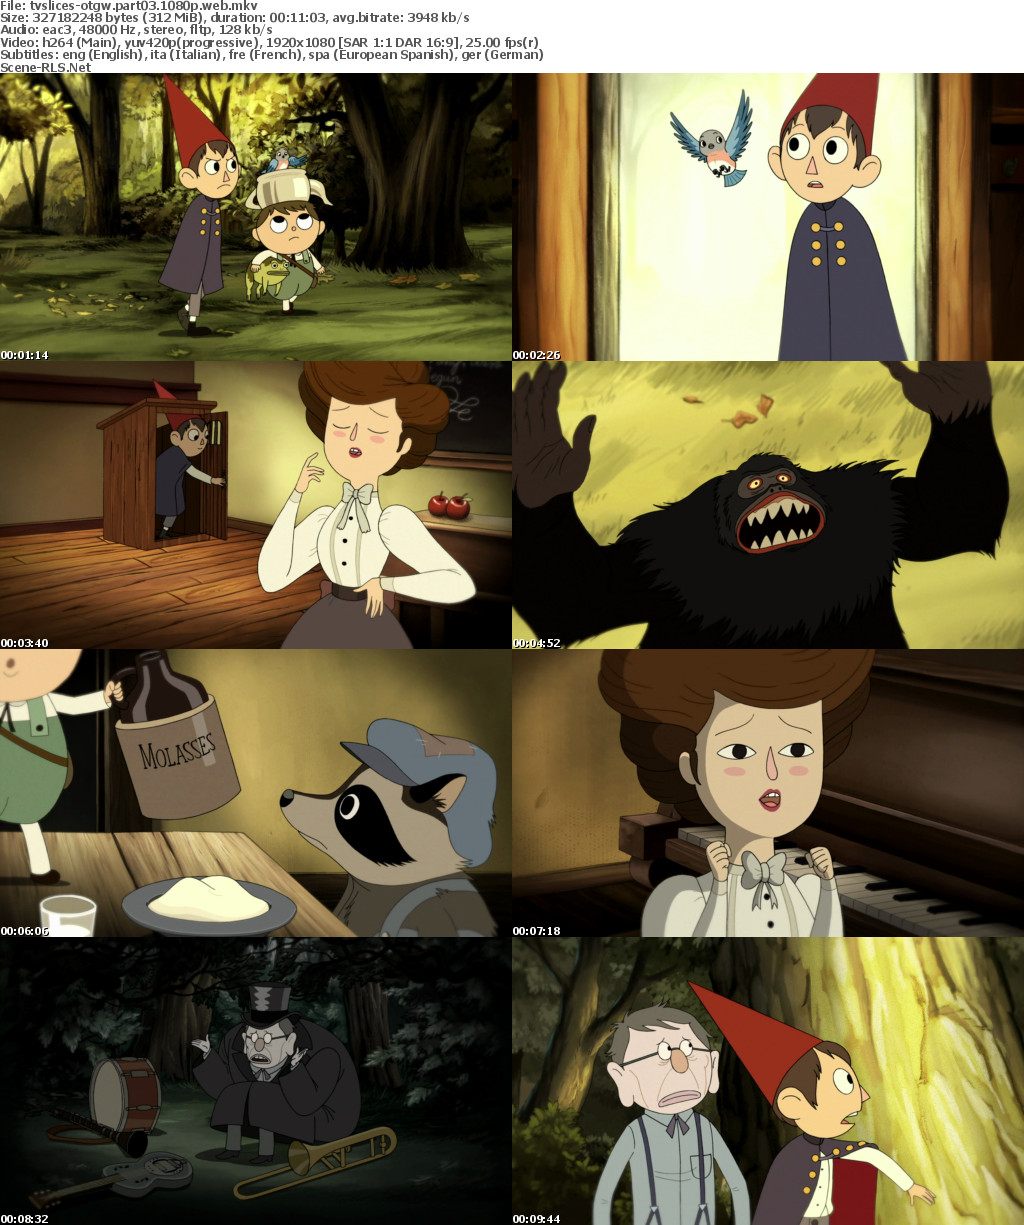 Over The Garden Wall Part03 1080p WEB x264-TVSLiCES - Scene Release